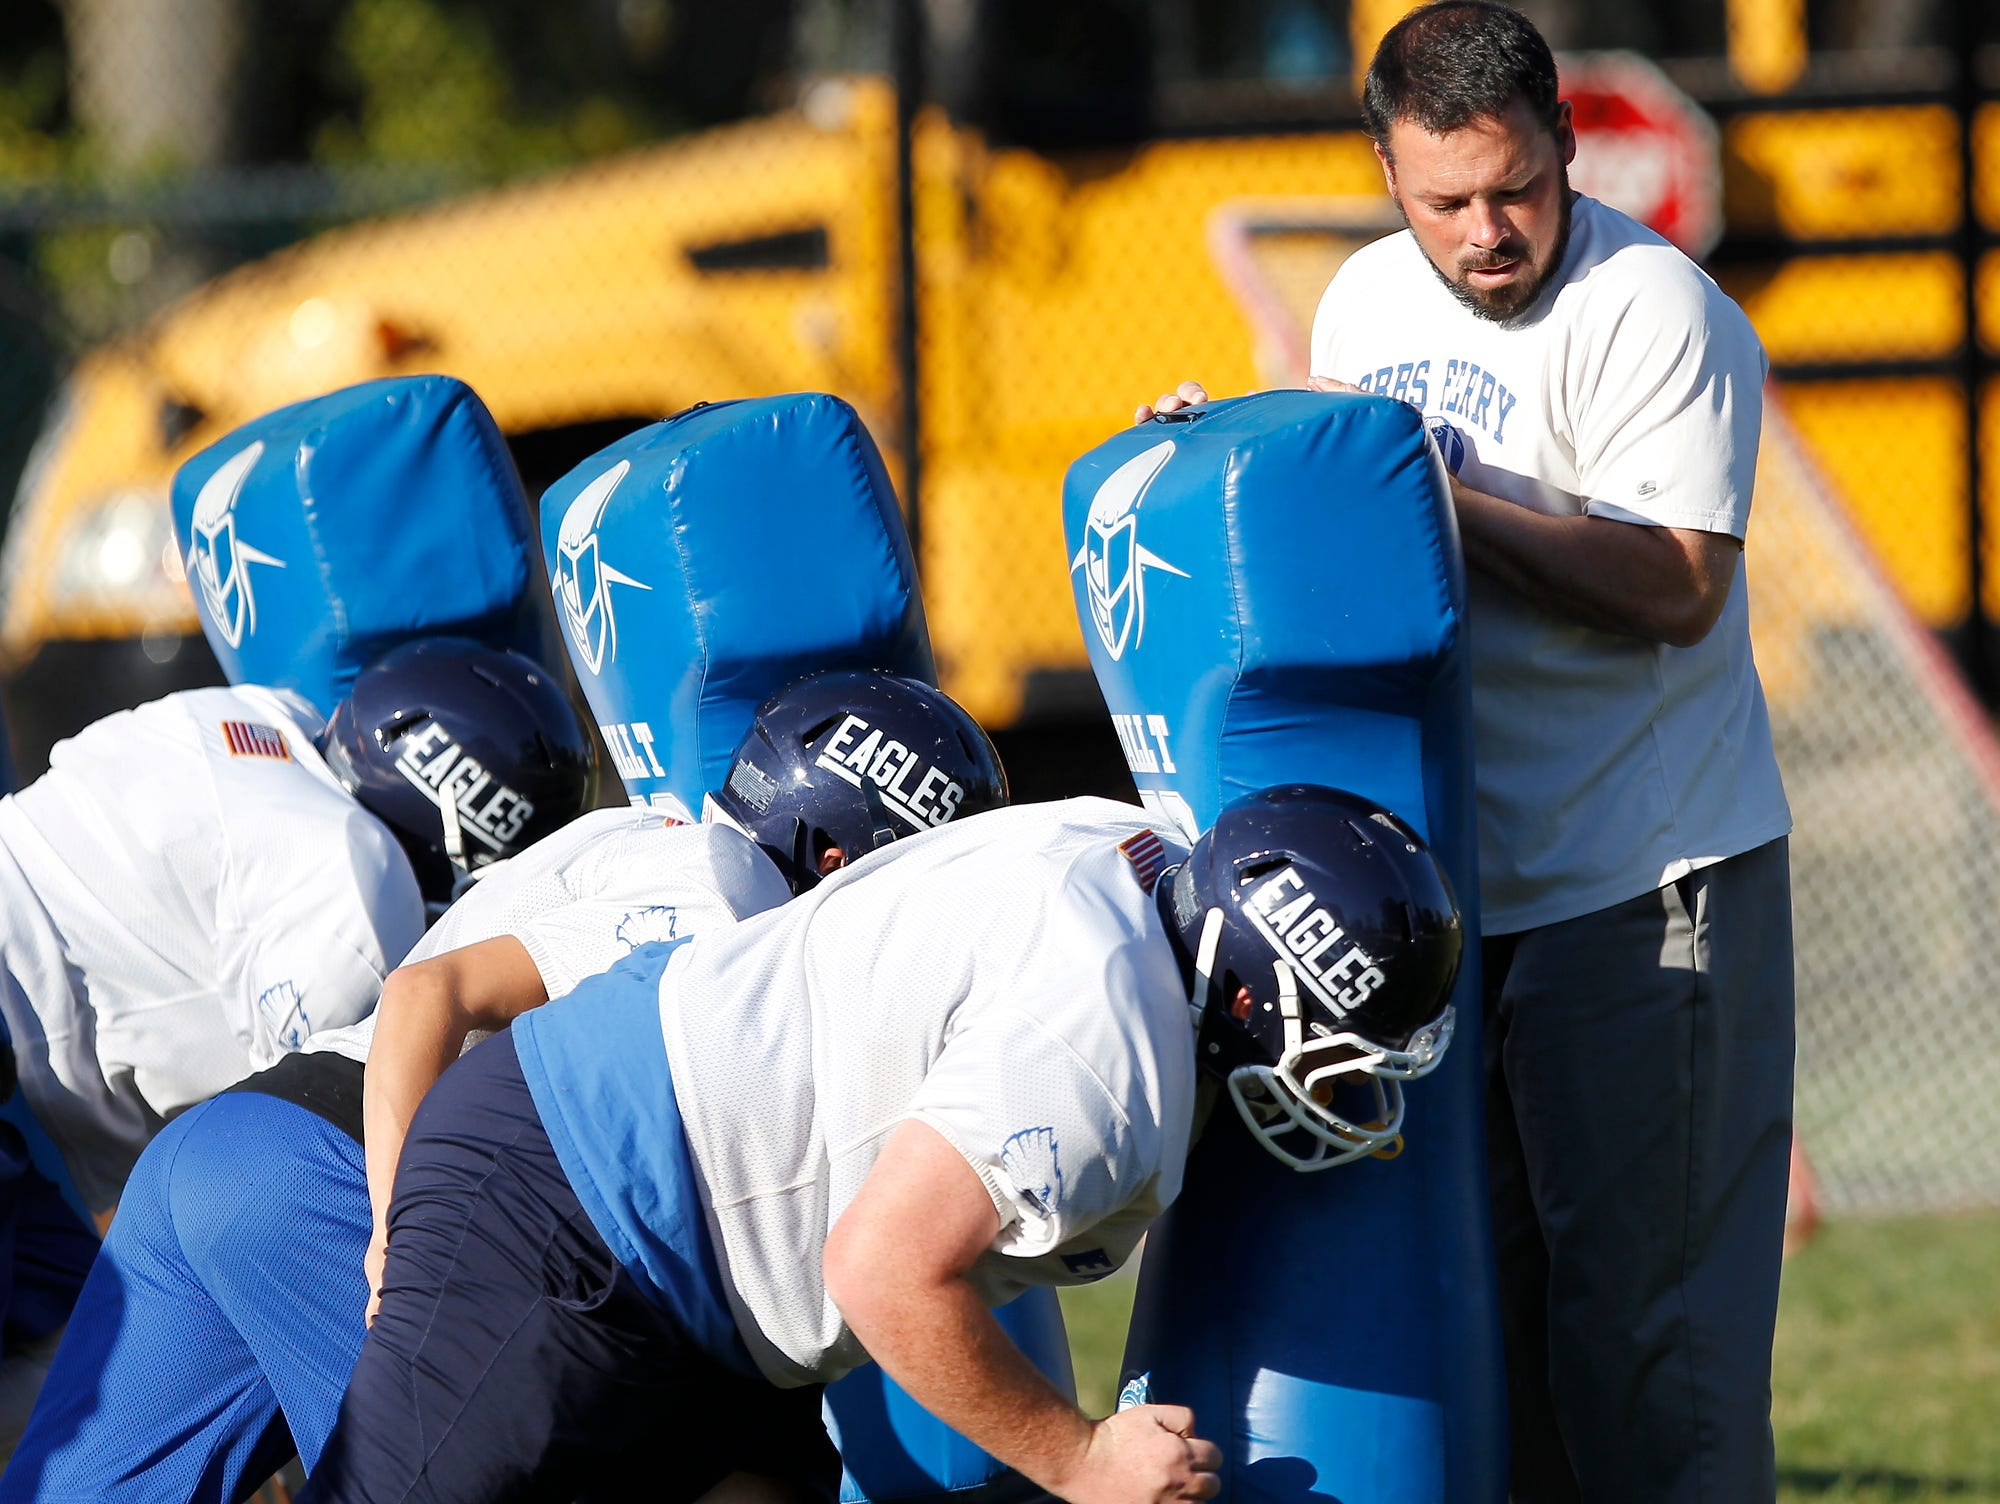 Dobbs Ferry football head coach Jim Moran instructs players during practice on Tuesday, Oct. 20, 2015.